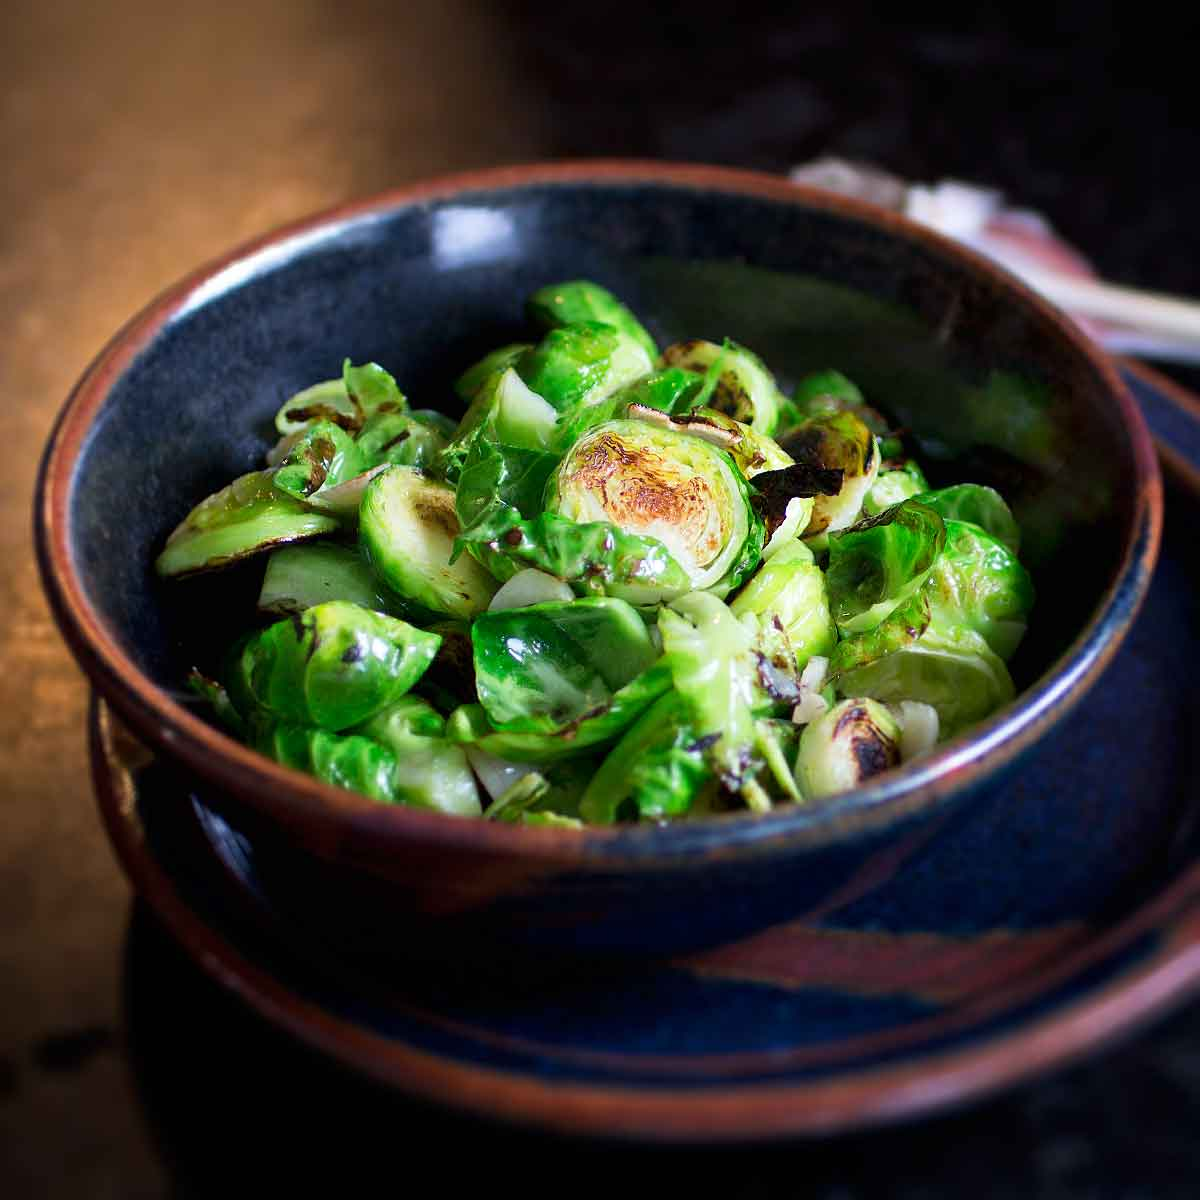 pan fried brussel sprouts with crispy garlic